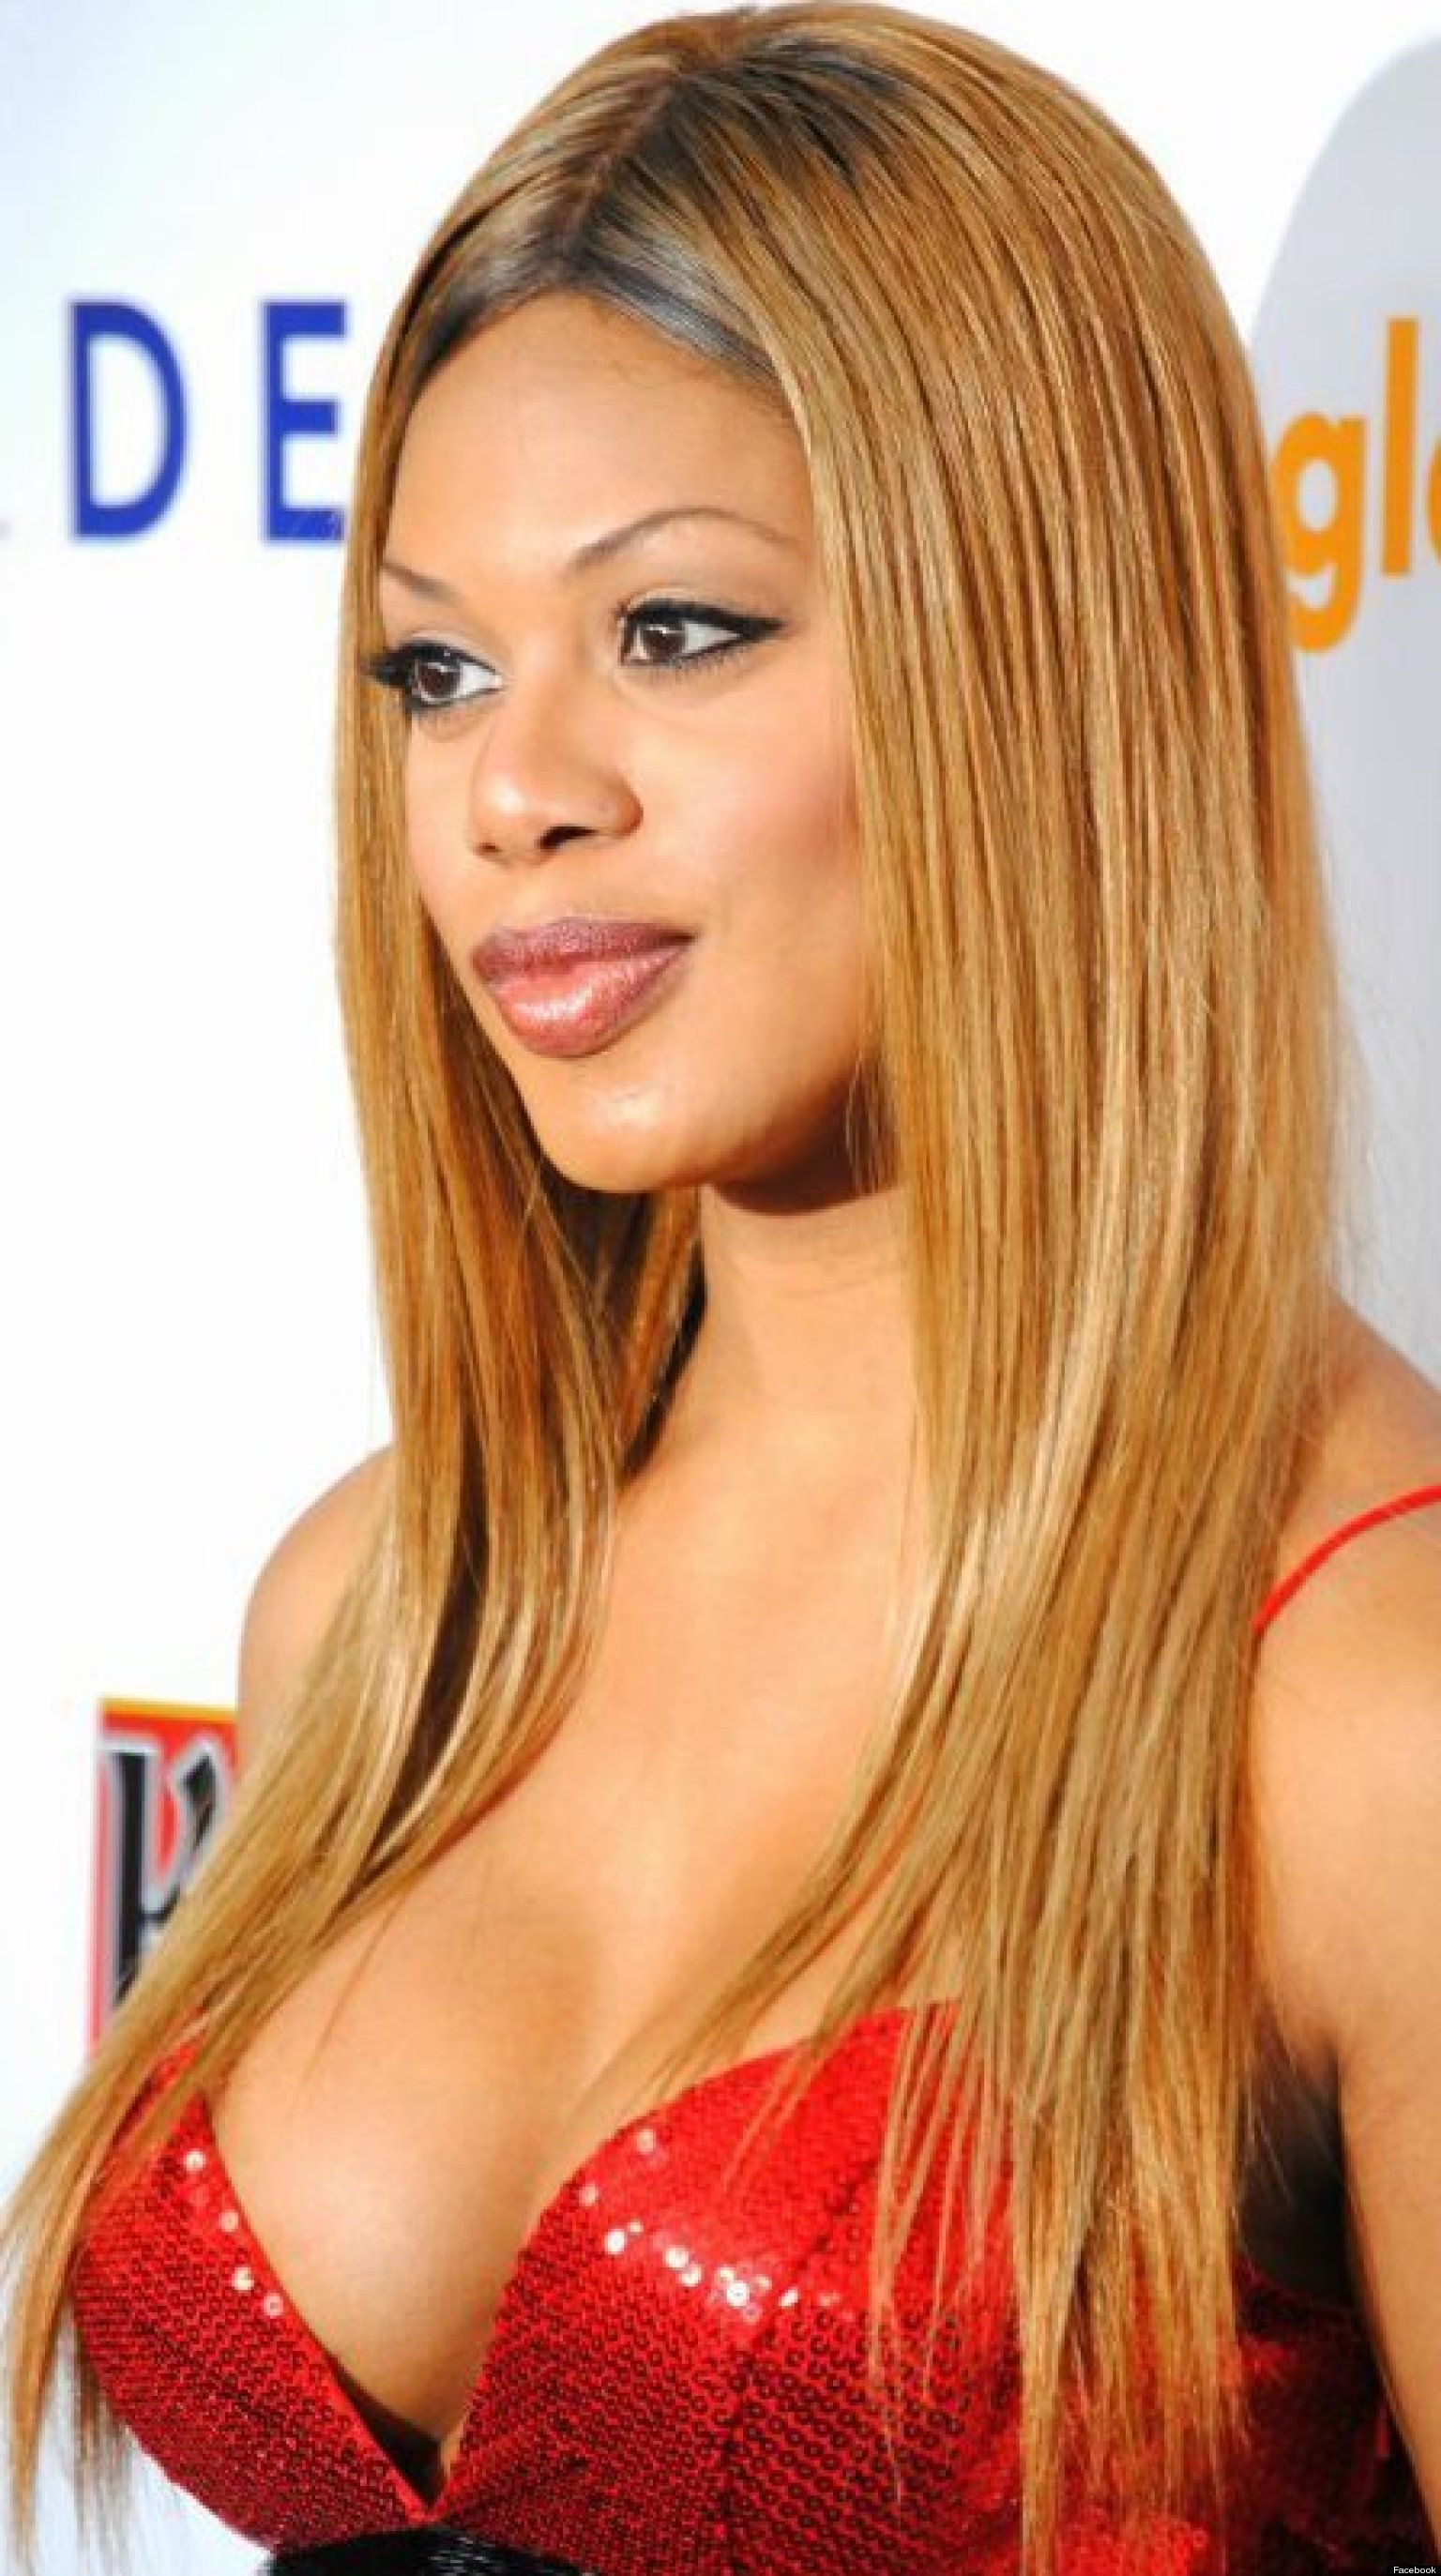 via http://www.huffingtonpost.com/2012/10/26/lgbt-history-month-icon-laverne-cox_n_2011651.html